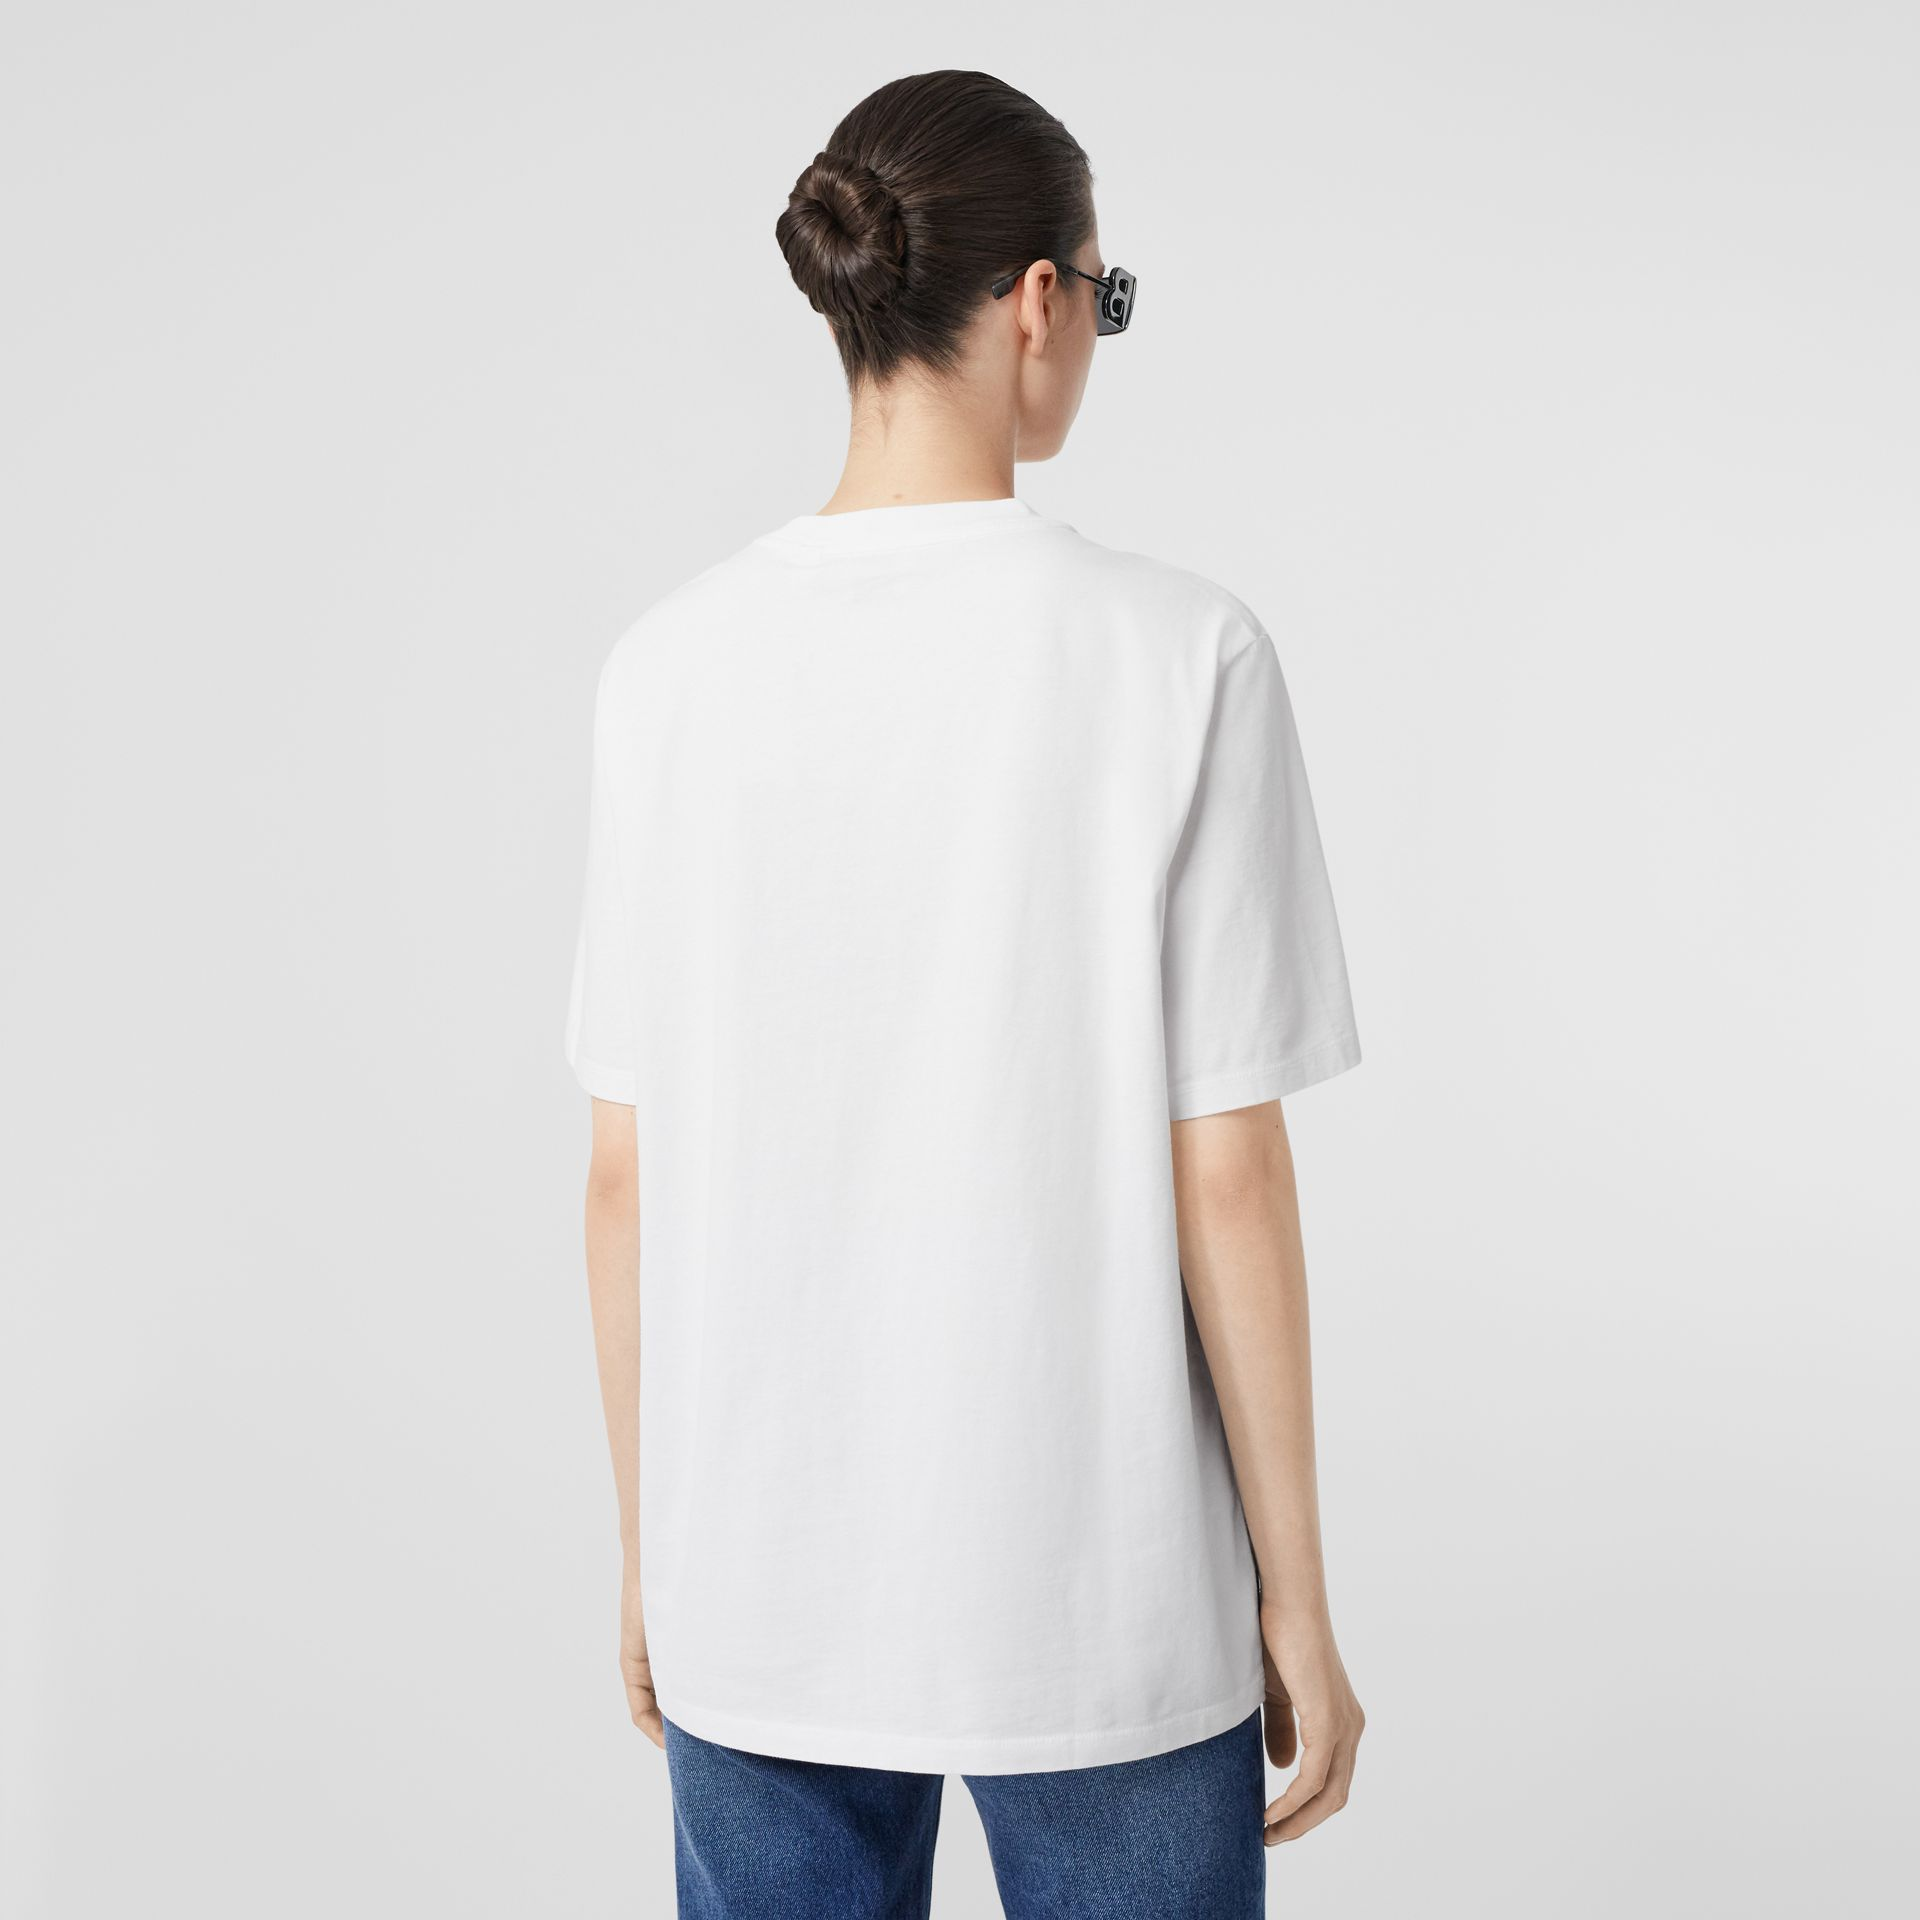 Embroidered Archive Logo Cotton T-shirt in White - Women | Burberry Hong Kong S.A.R - gallery image 2